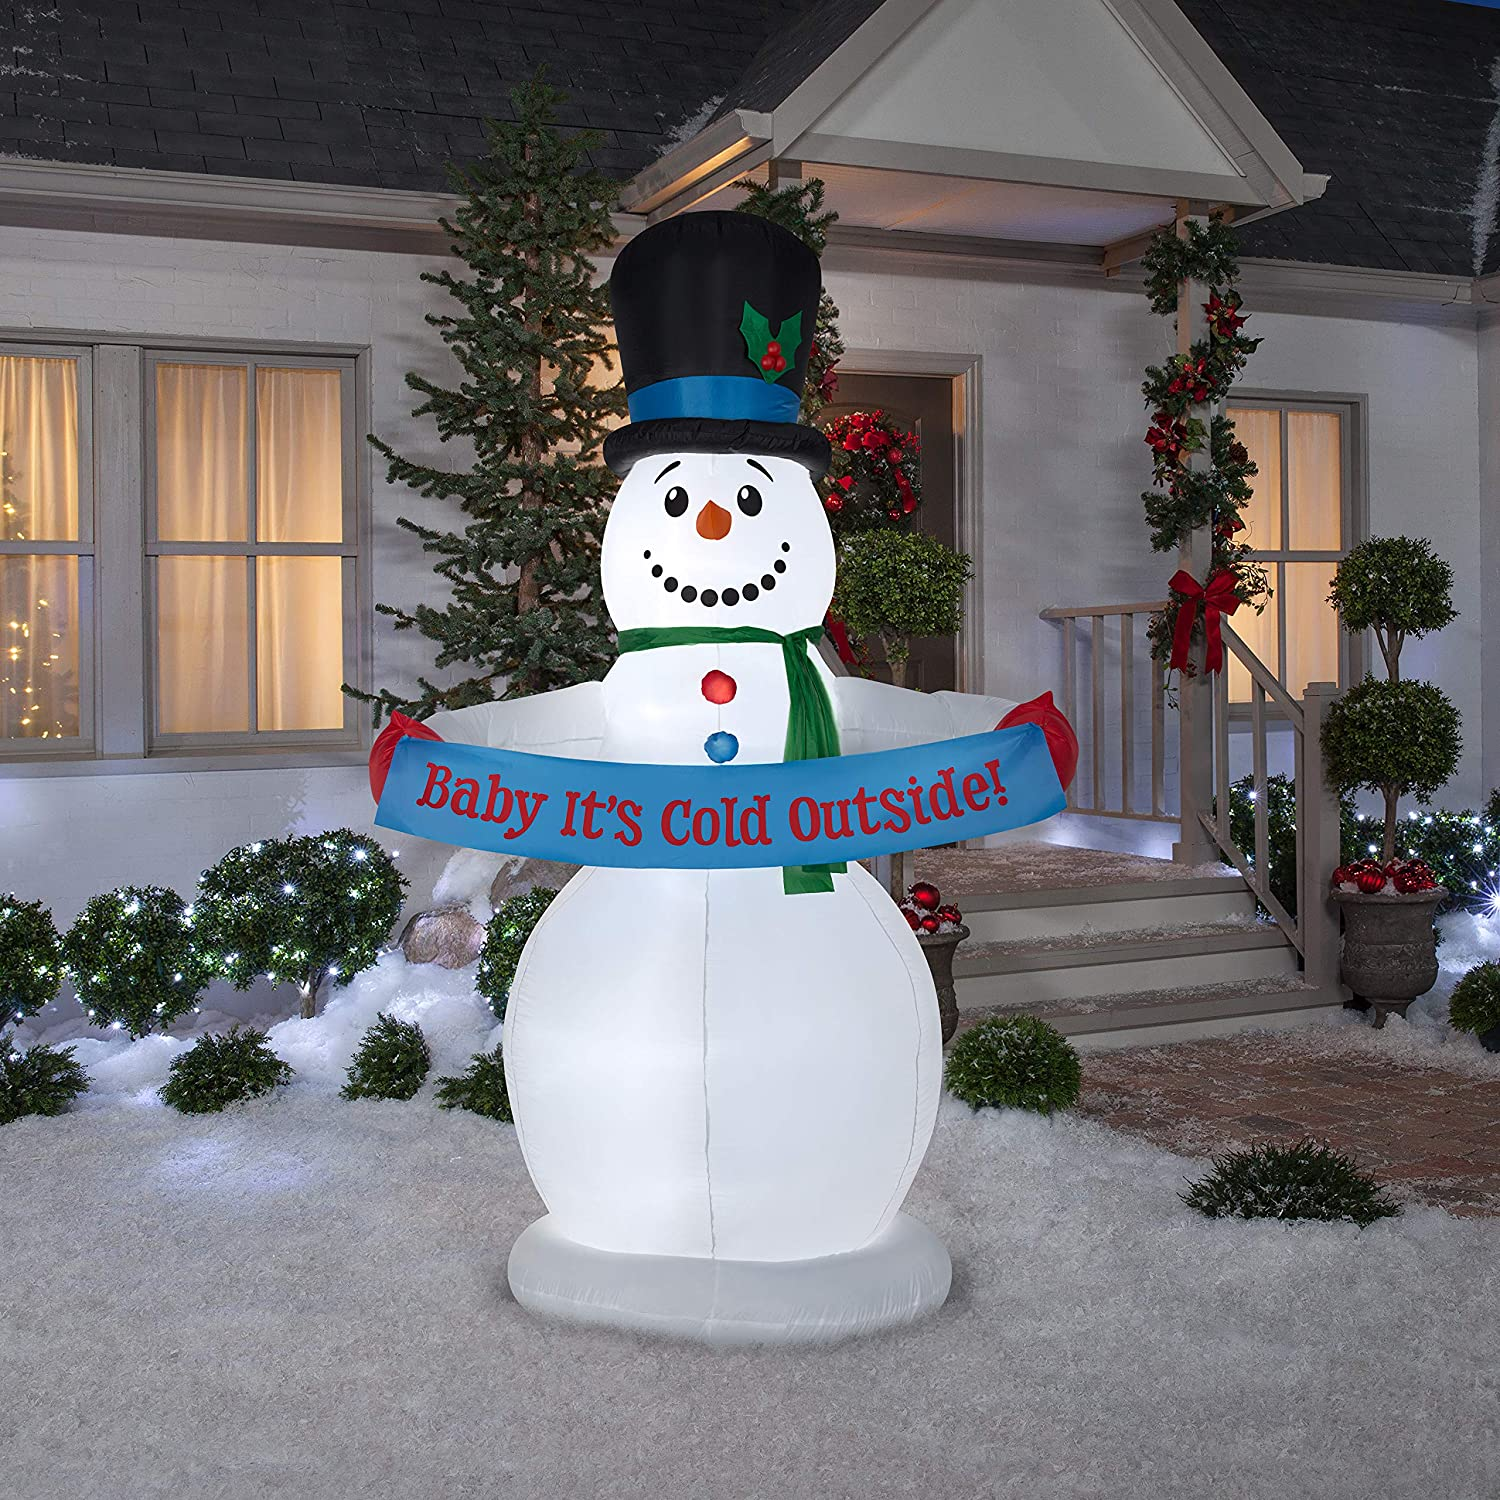 Animated Christmas Inflatable Snowman w/Banner! .99 (REG: .95) at WOOT!